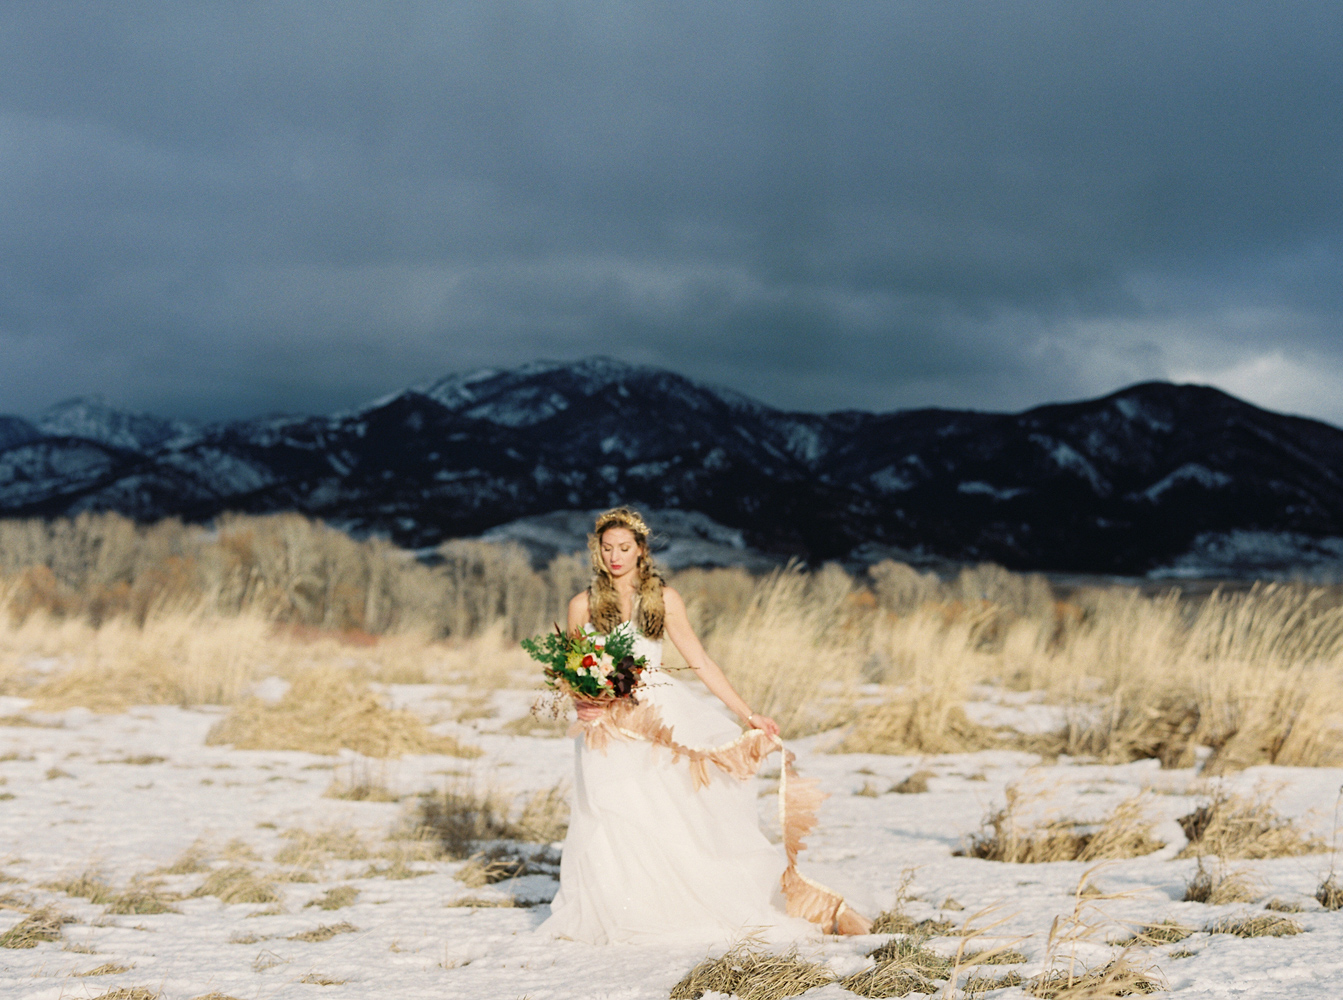 Montana Bride / Orange Photographie / Hair & Makeup: Alexa Mae / Flowers & Styling: Katalin Green / Dress: Poppy Bride